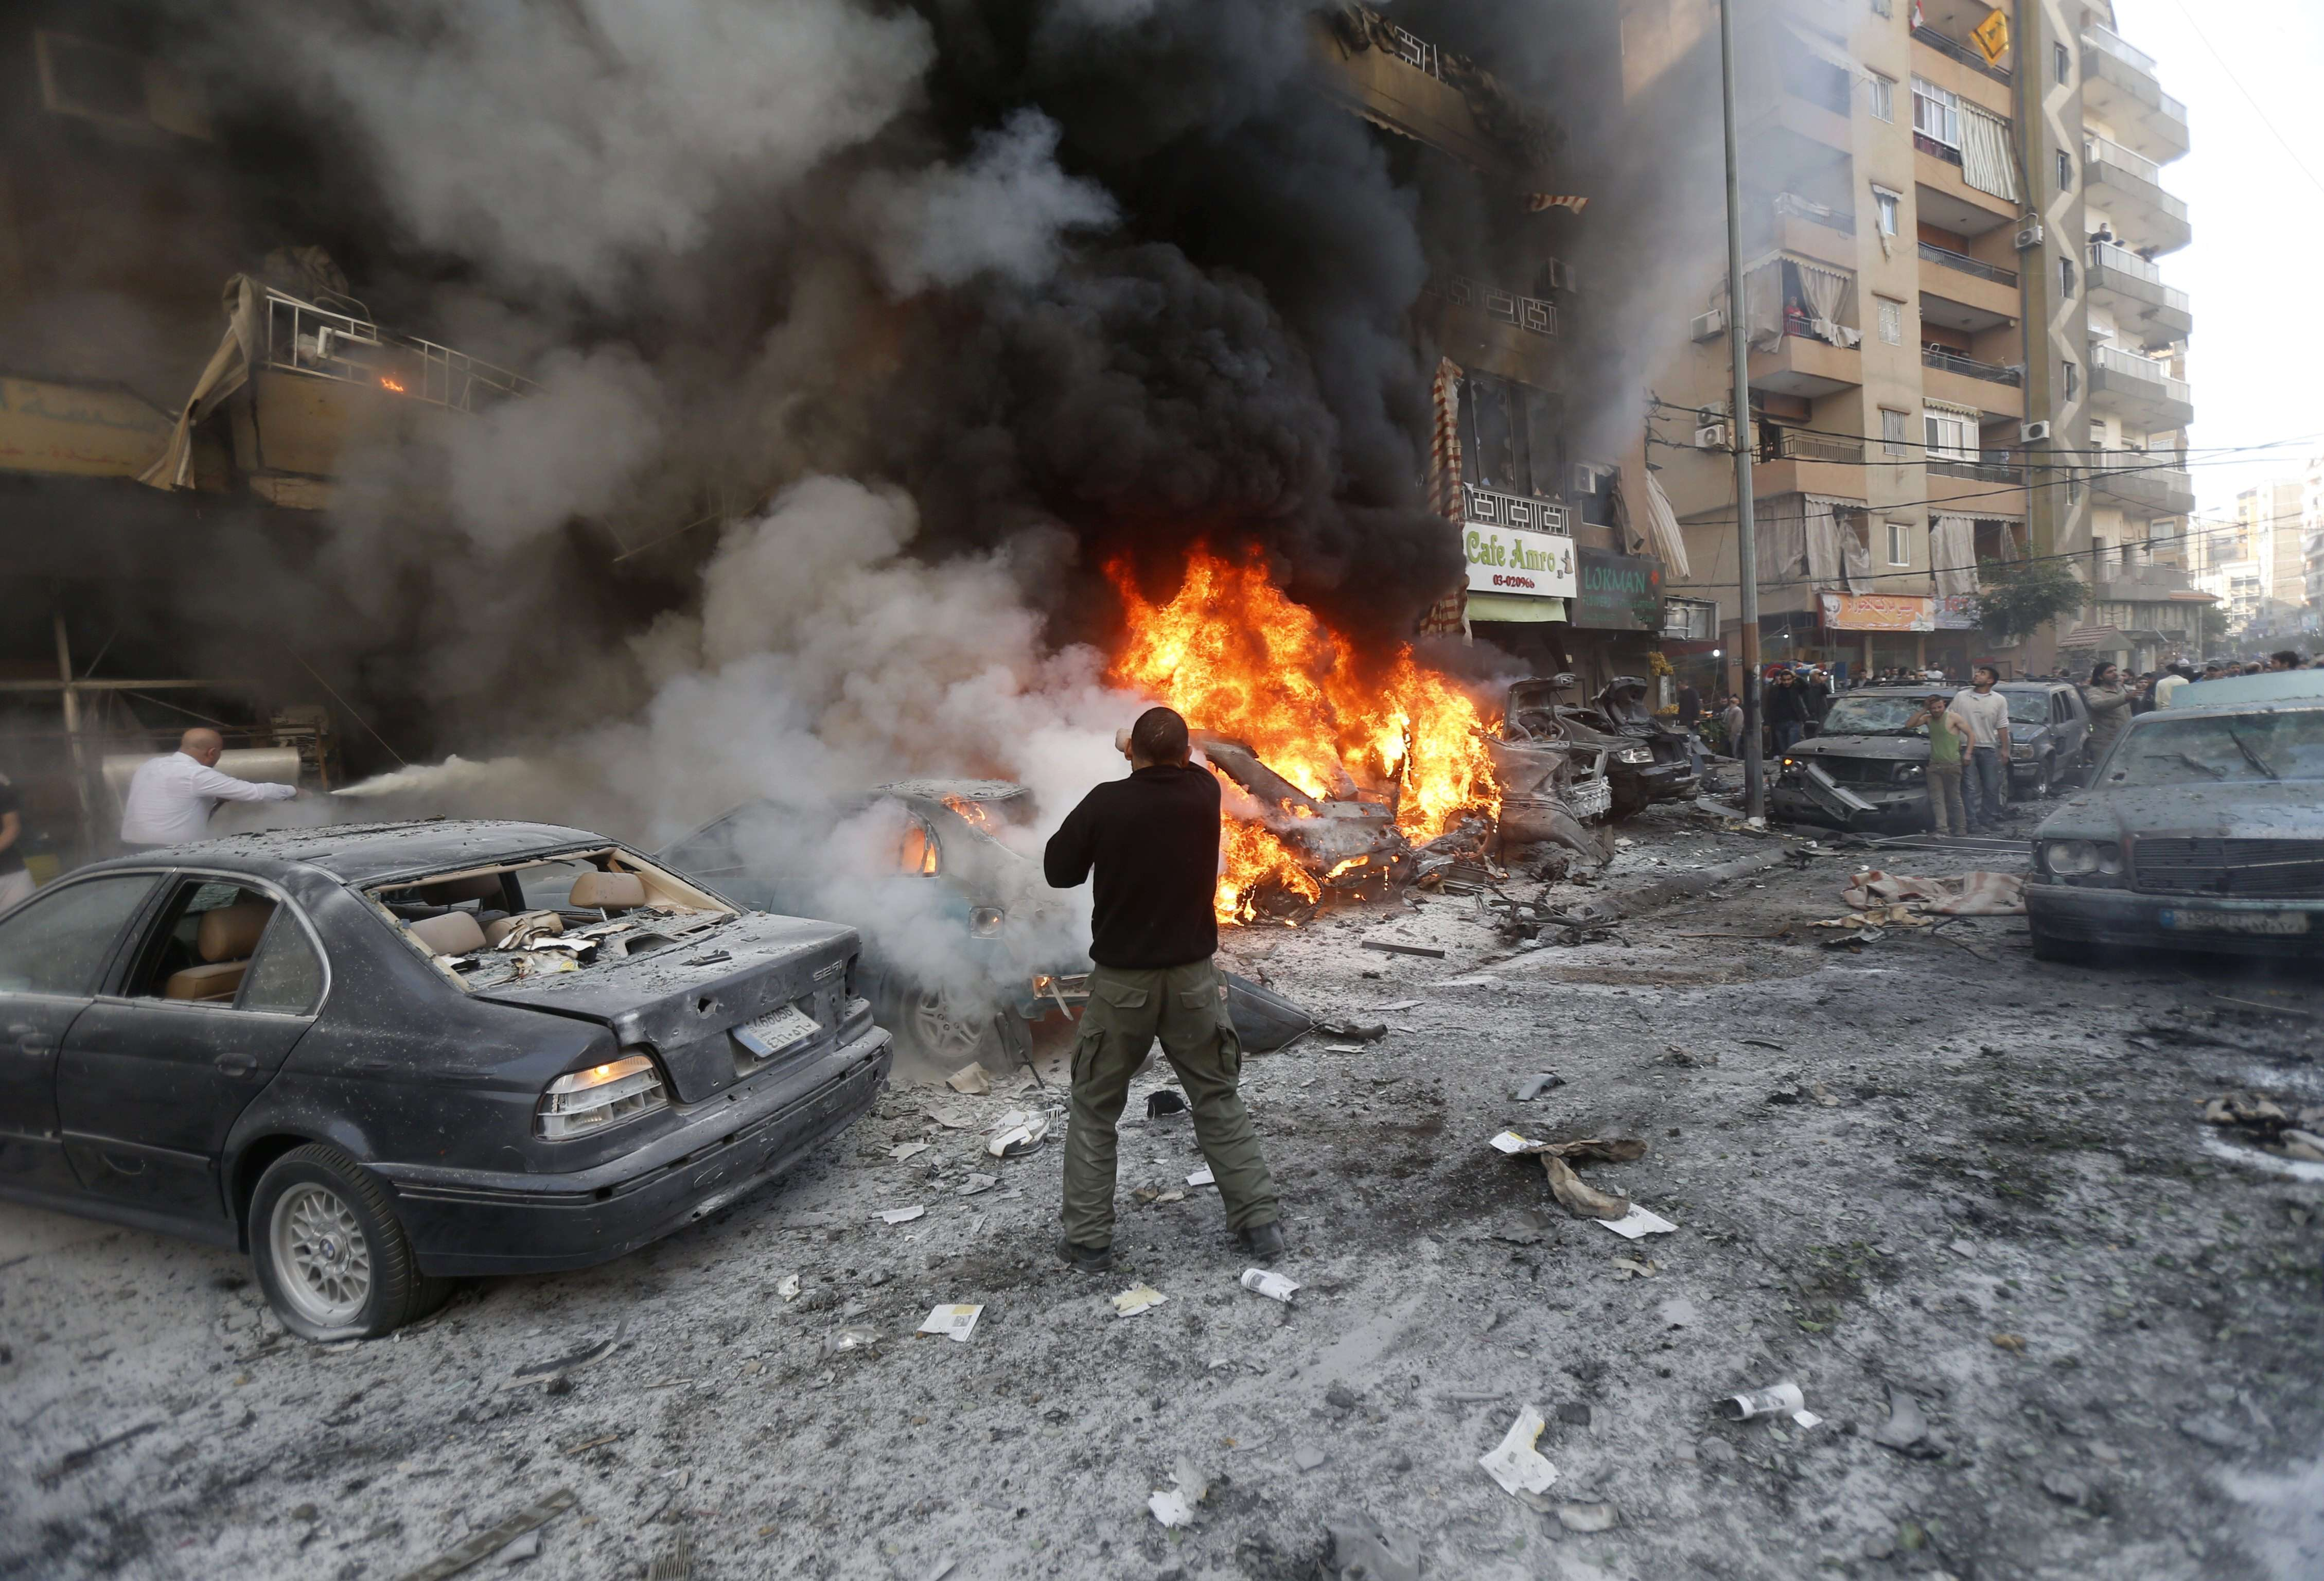 Lebanese men try to extinguish fire from burning cars following an explosion on January 21, 2014 in Haret Hreik, a south Beirut neighbourhood considered a stronghold of the Lebanese Shiite movement Hezbollah. Two people were killed in the apparent suicide car bombing, Lebanon's National News Agency said. (AFP PHOTO/STR)